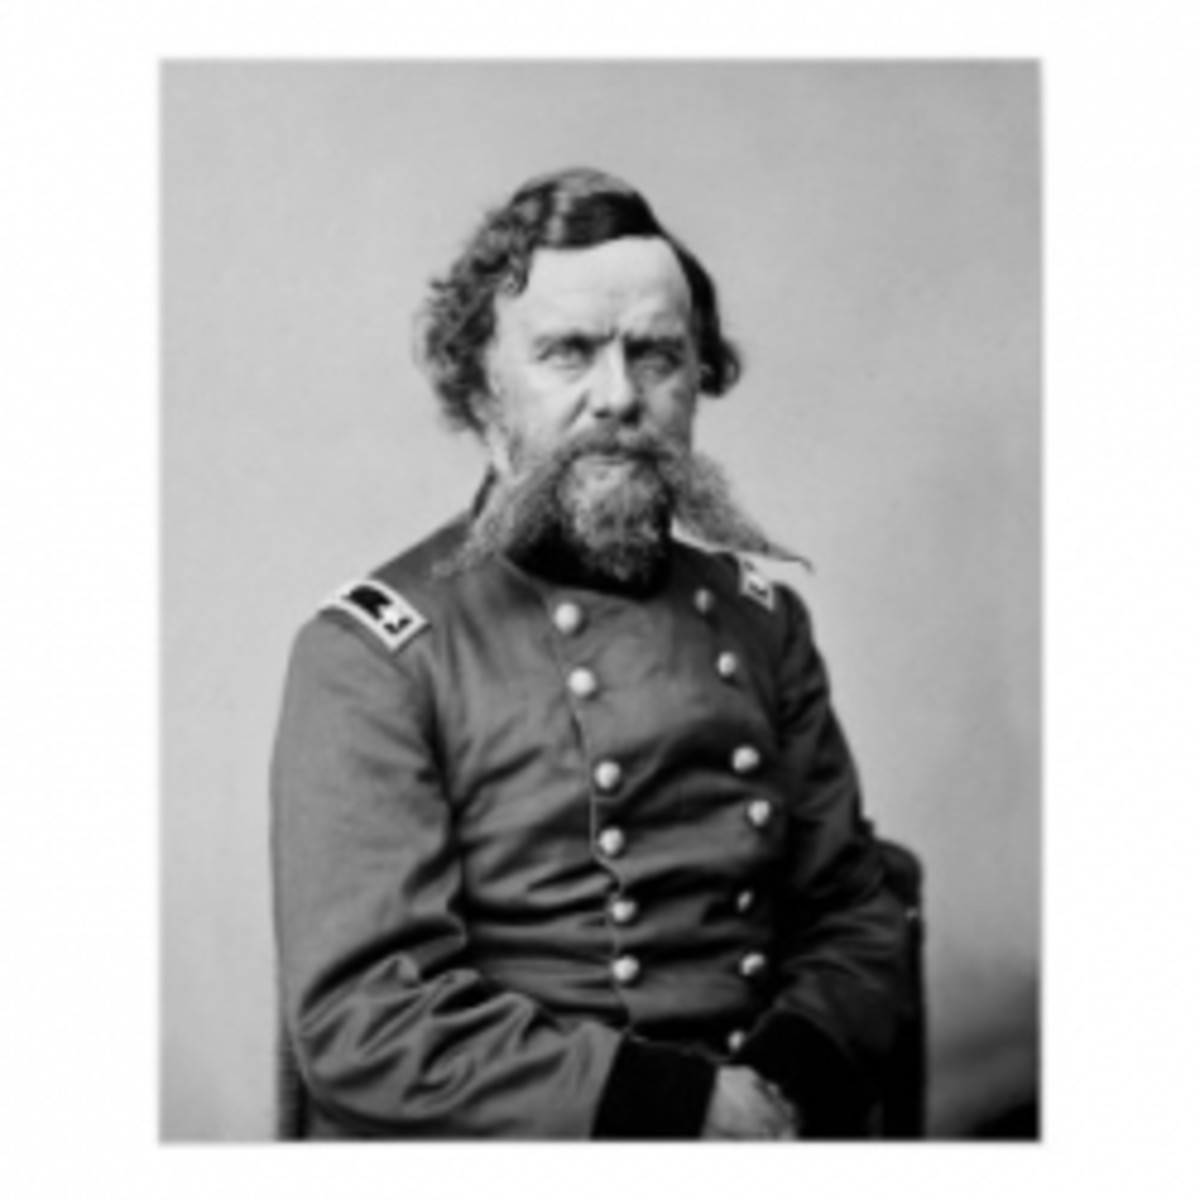 Officers of Company G - 93rd Indiana Infantry